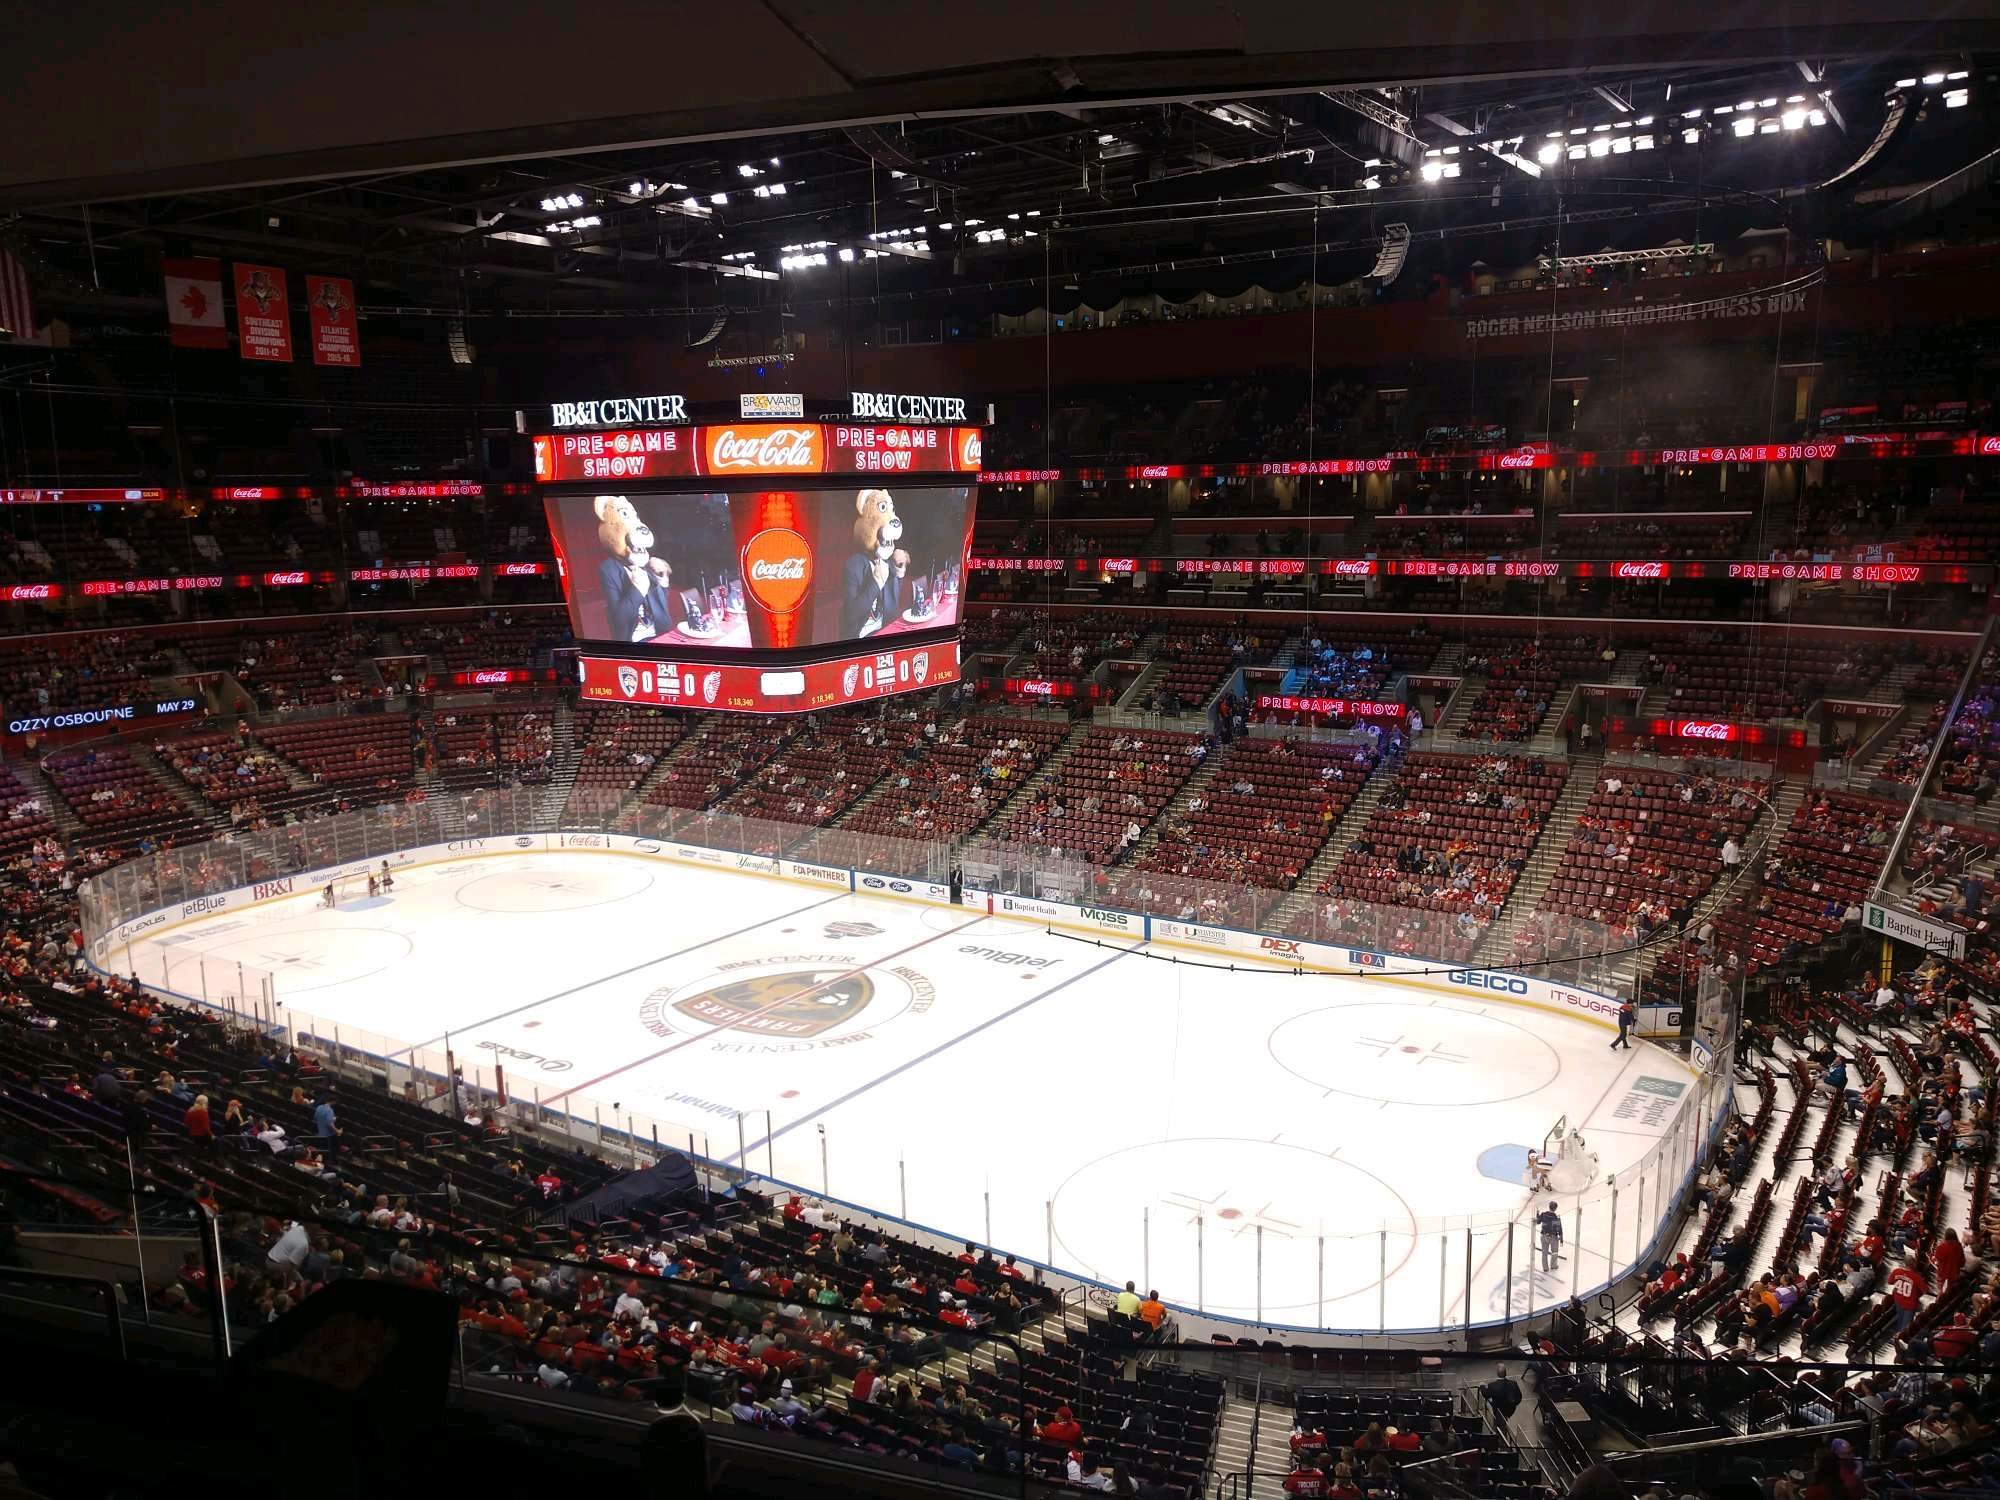 BB&T Center Section CL32 Row 8 Seat 14